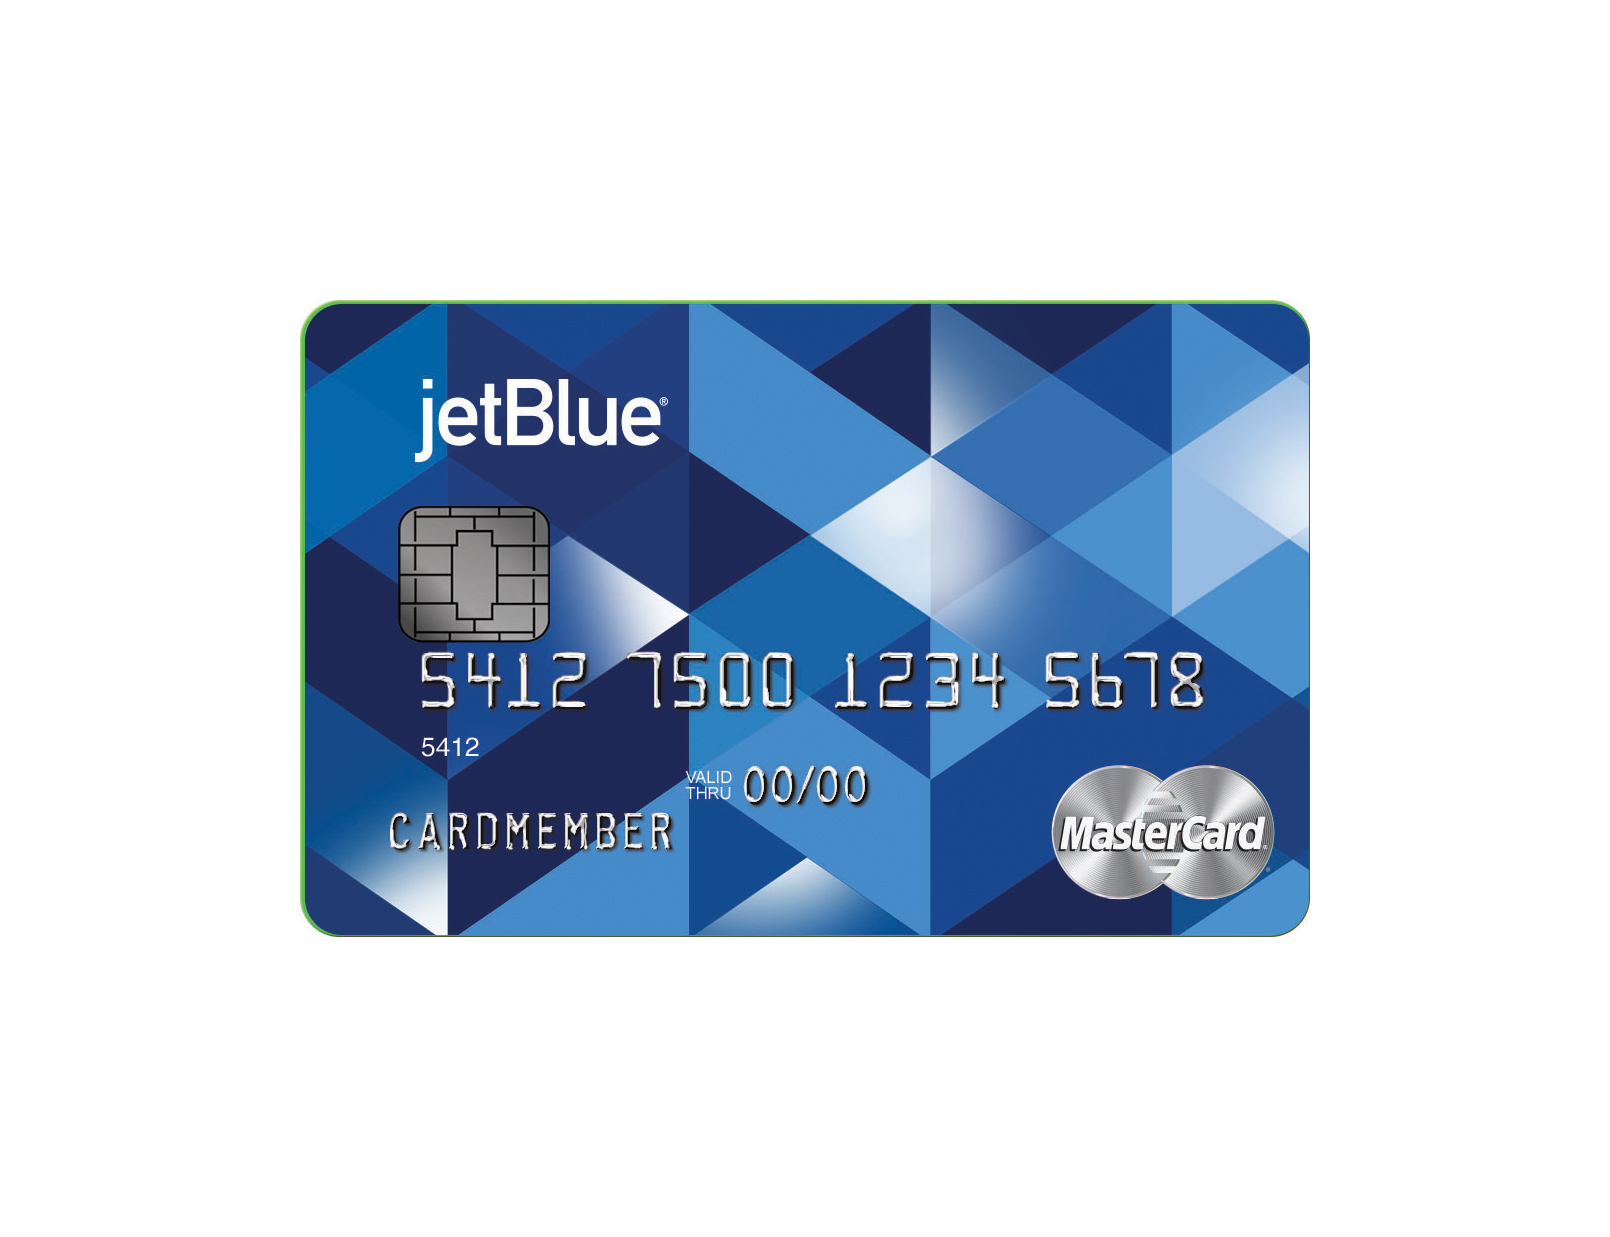 The New JetBlue Plus Card